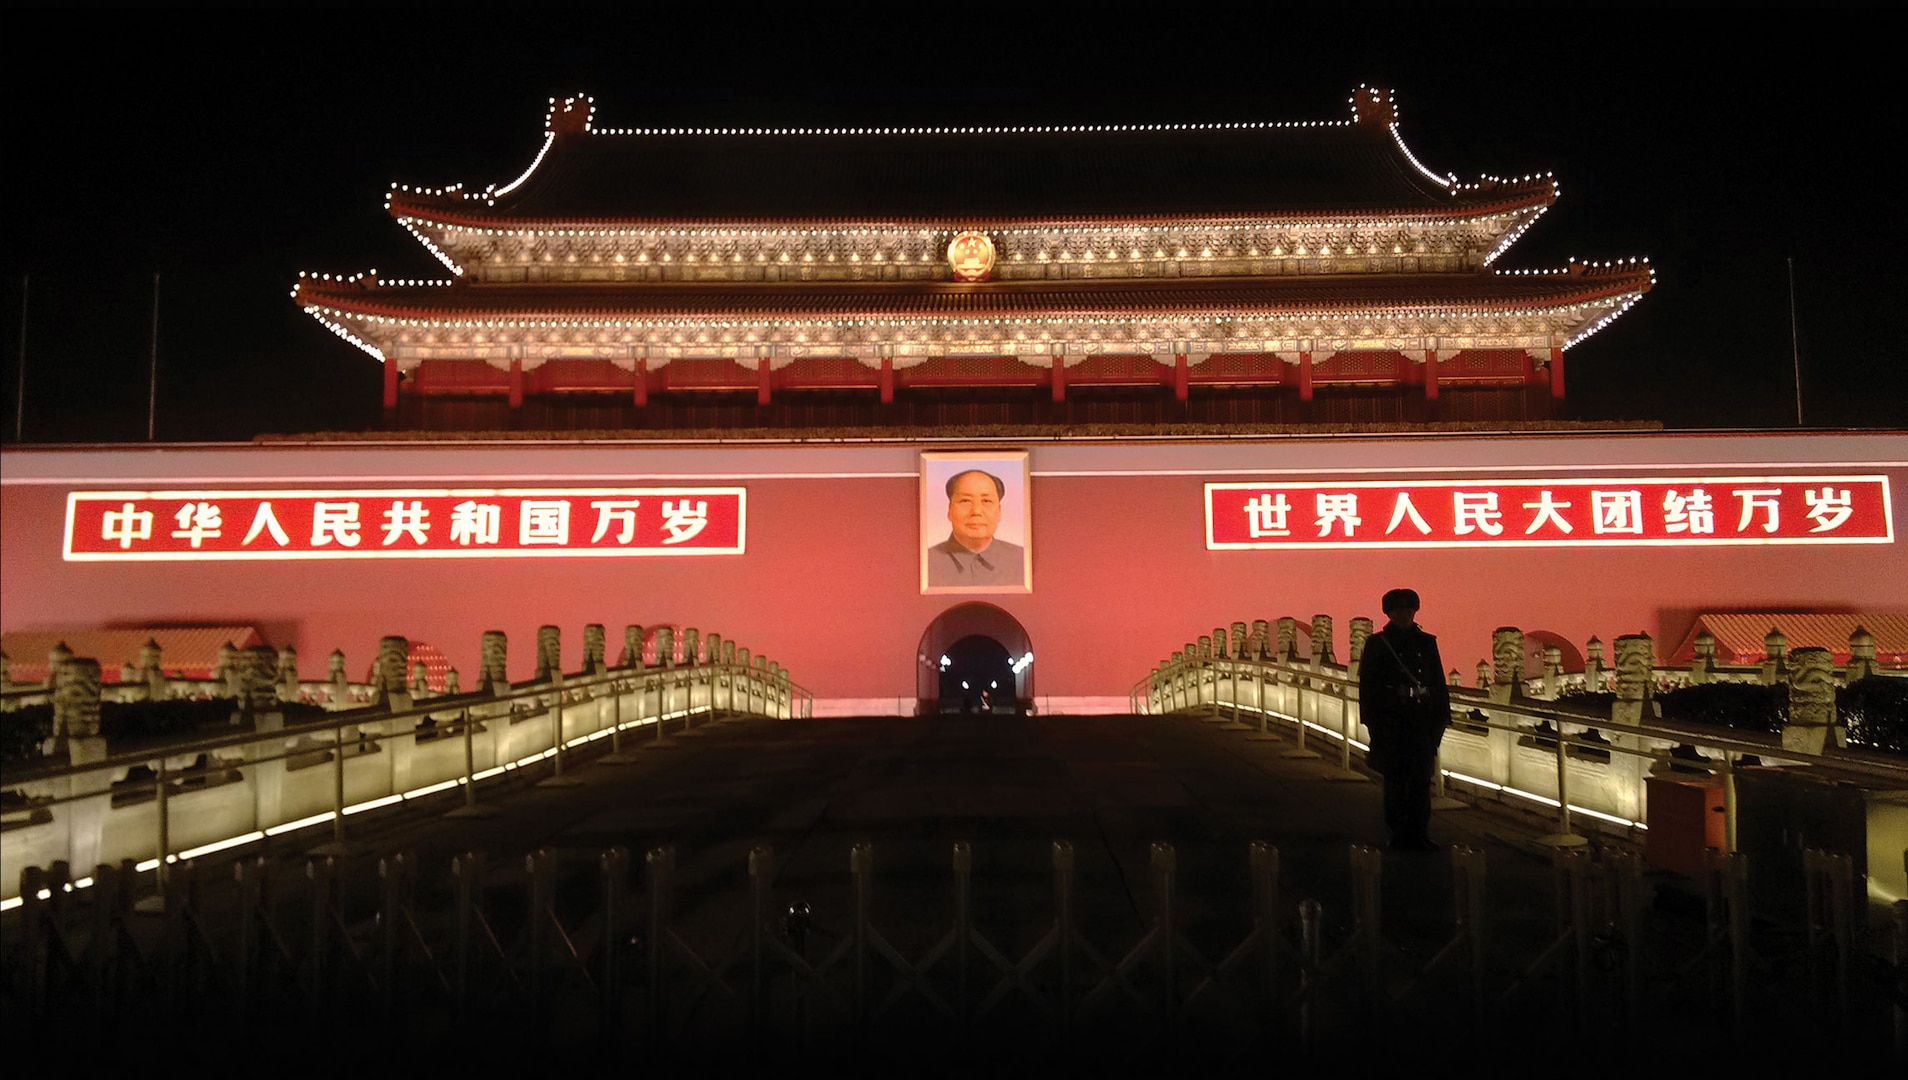 China today aspires to great power status. Tiananmen Square. (Willee710, January 10, 2014)